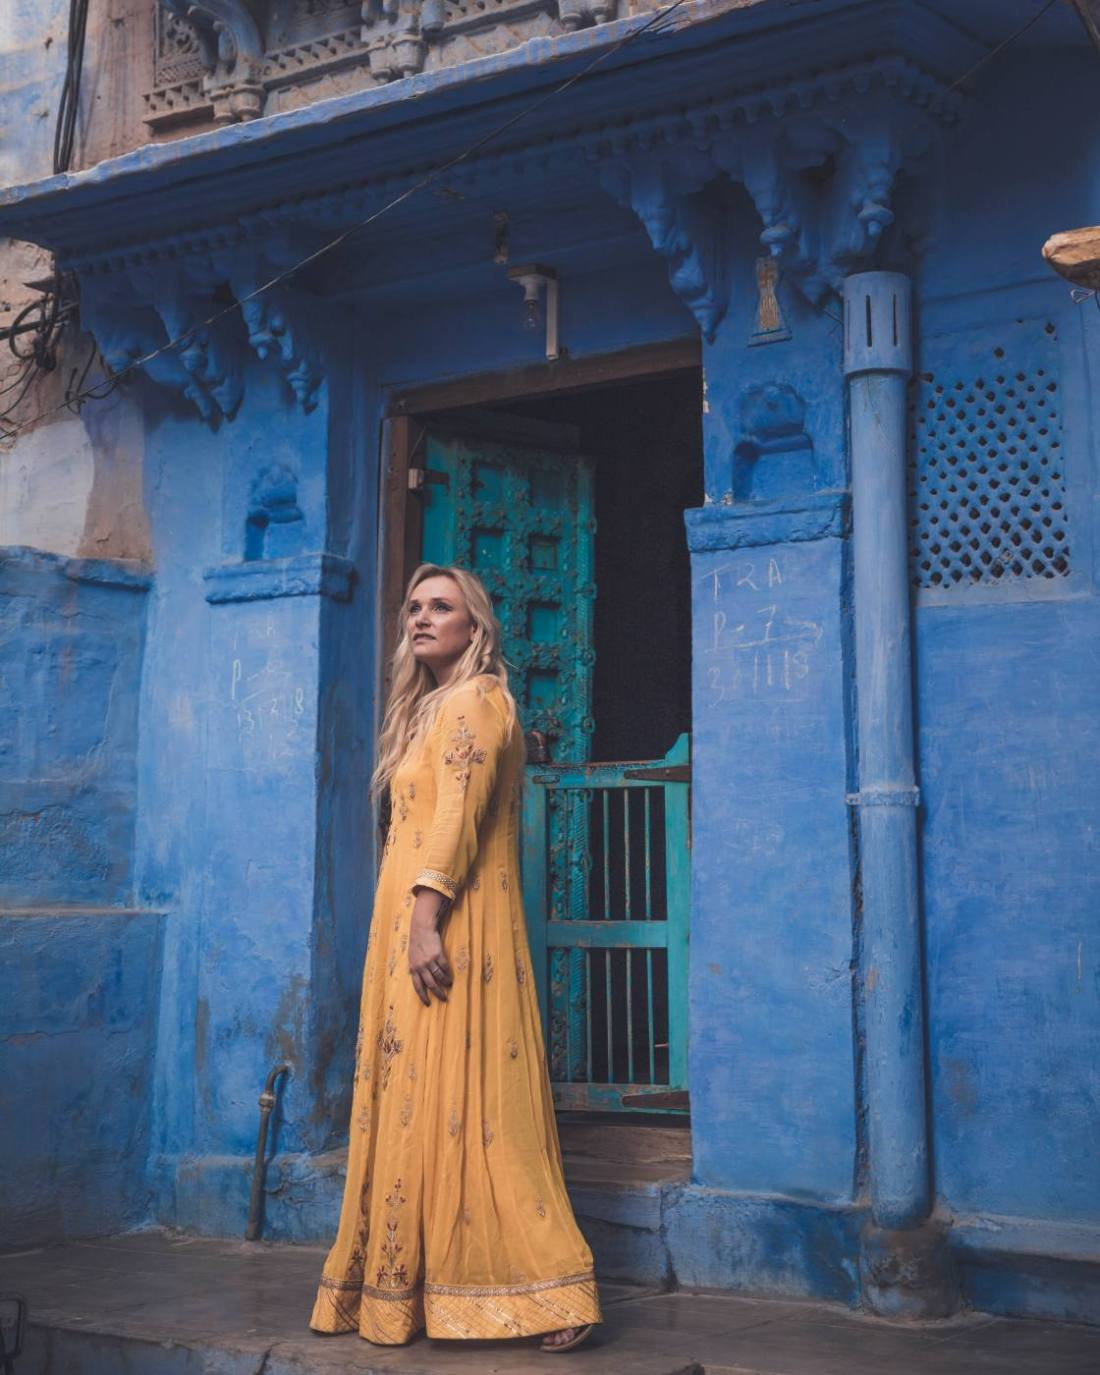 The Most Instagrammable places in Rajasthan